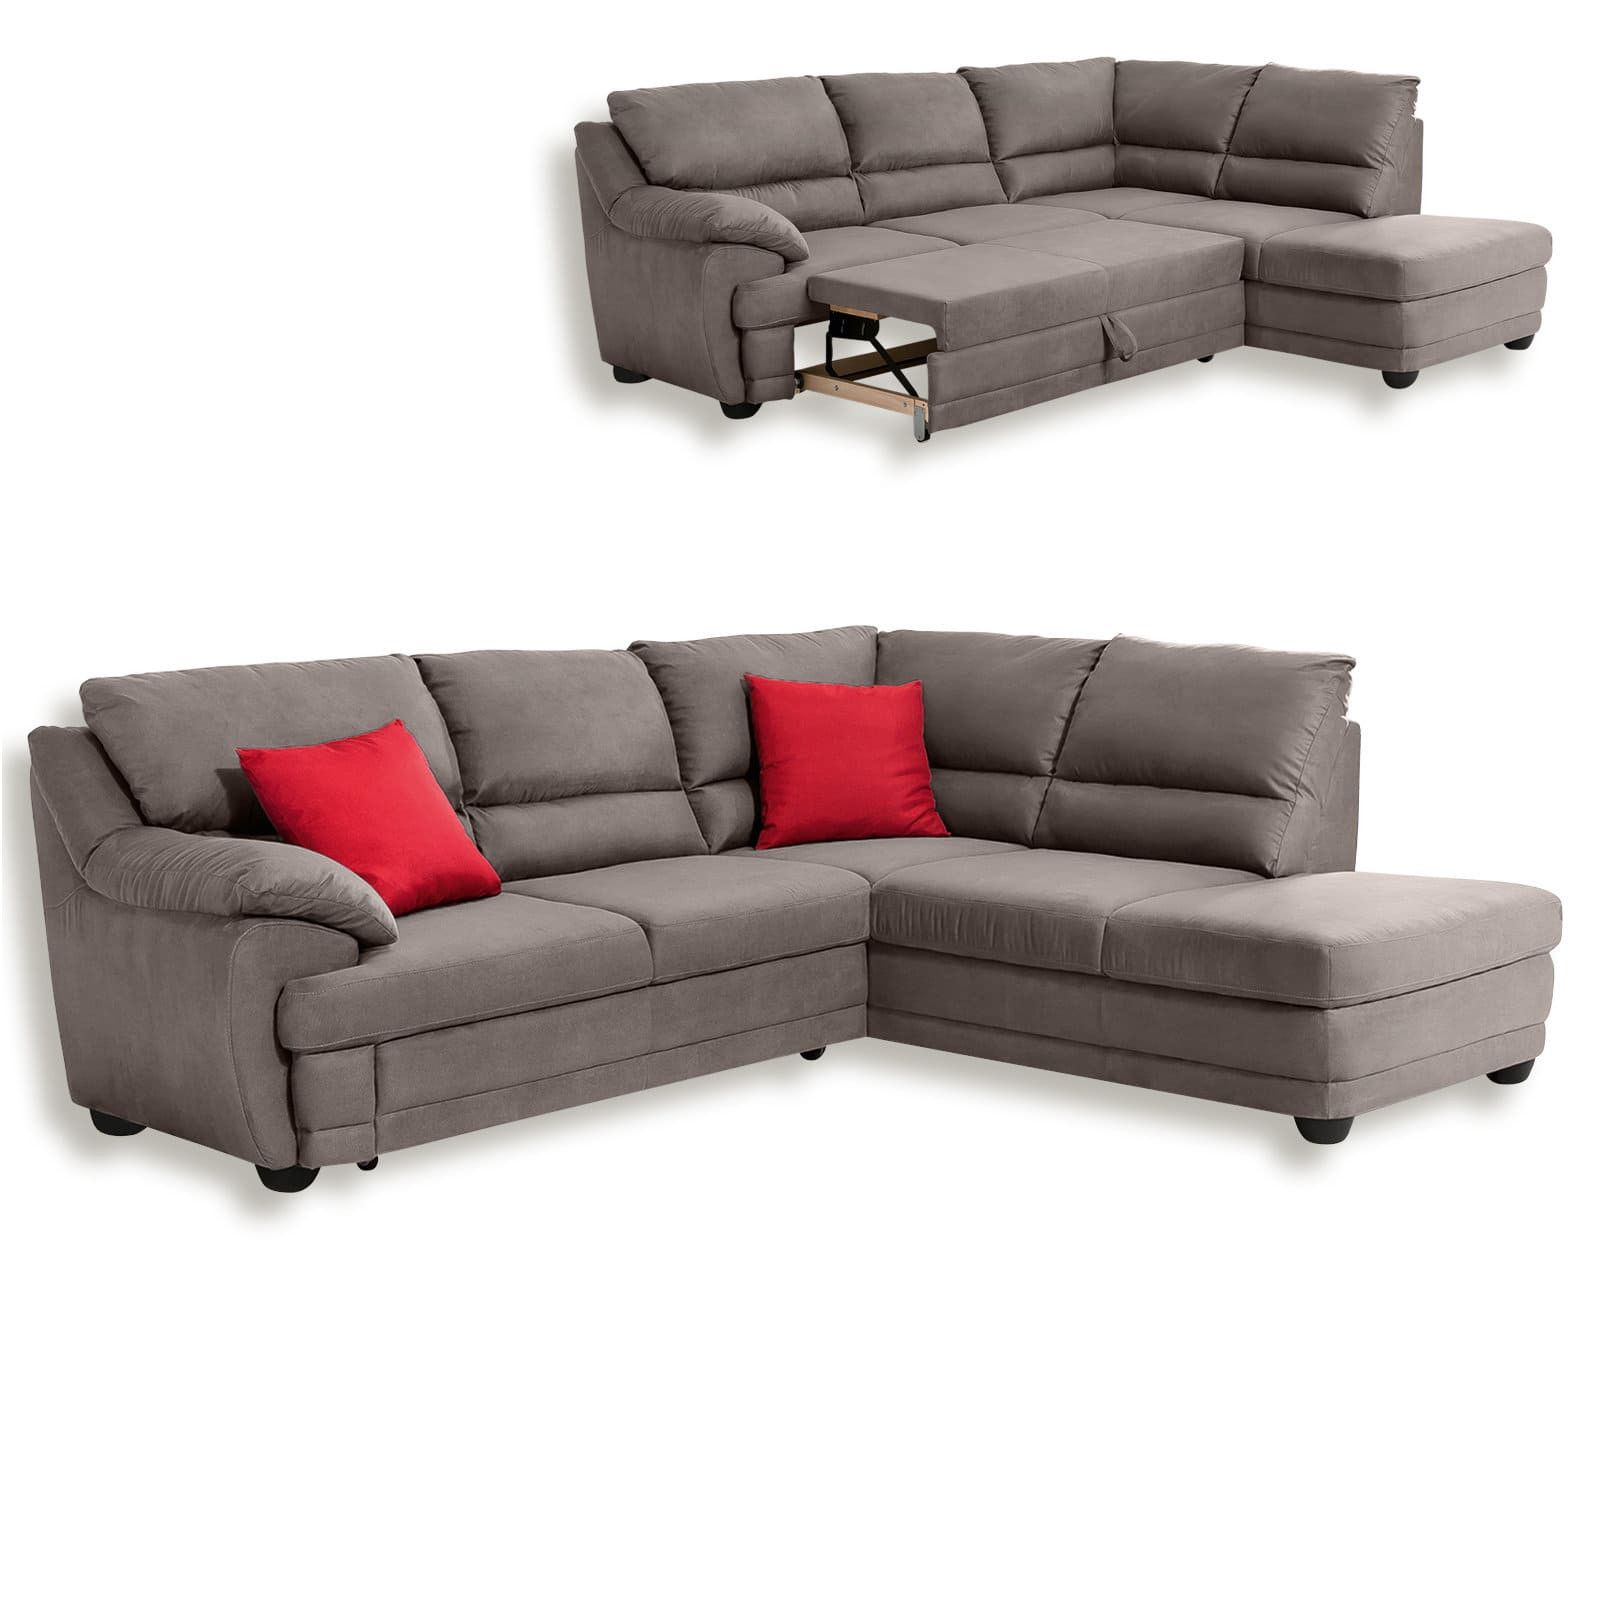 Akzeptabel Couch Relaxfunktion Couch Sectional Couch Home Decor